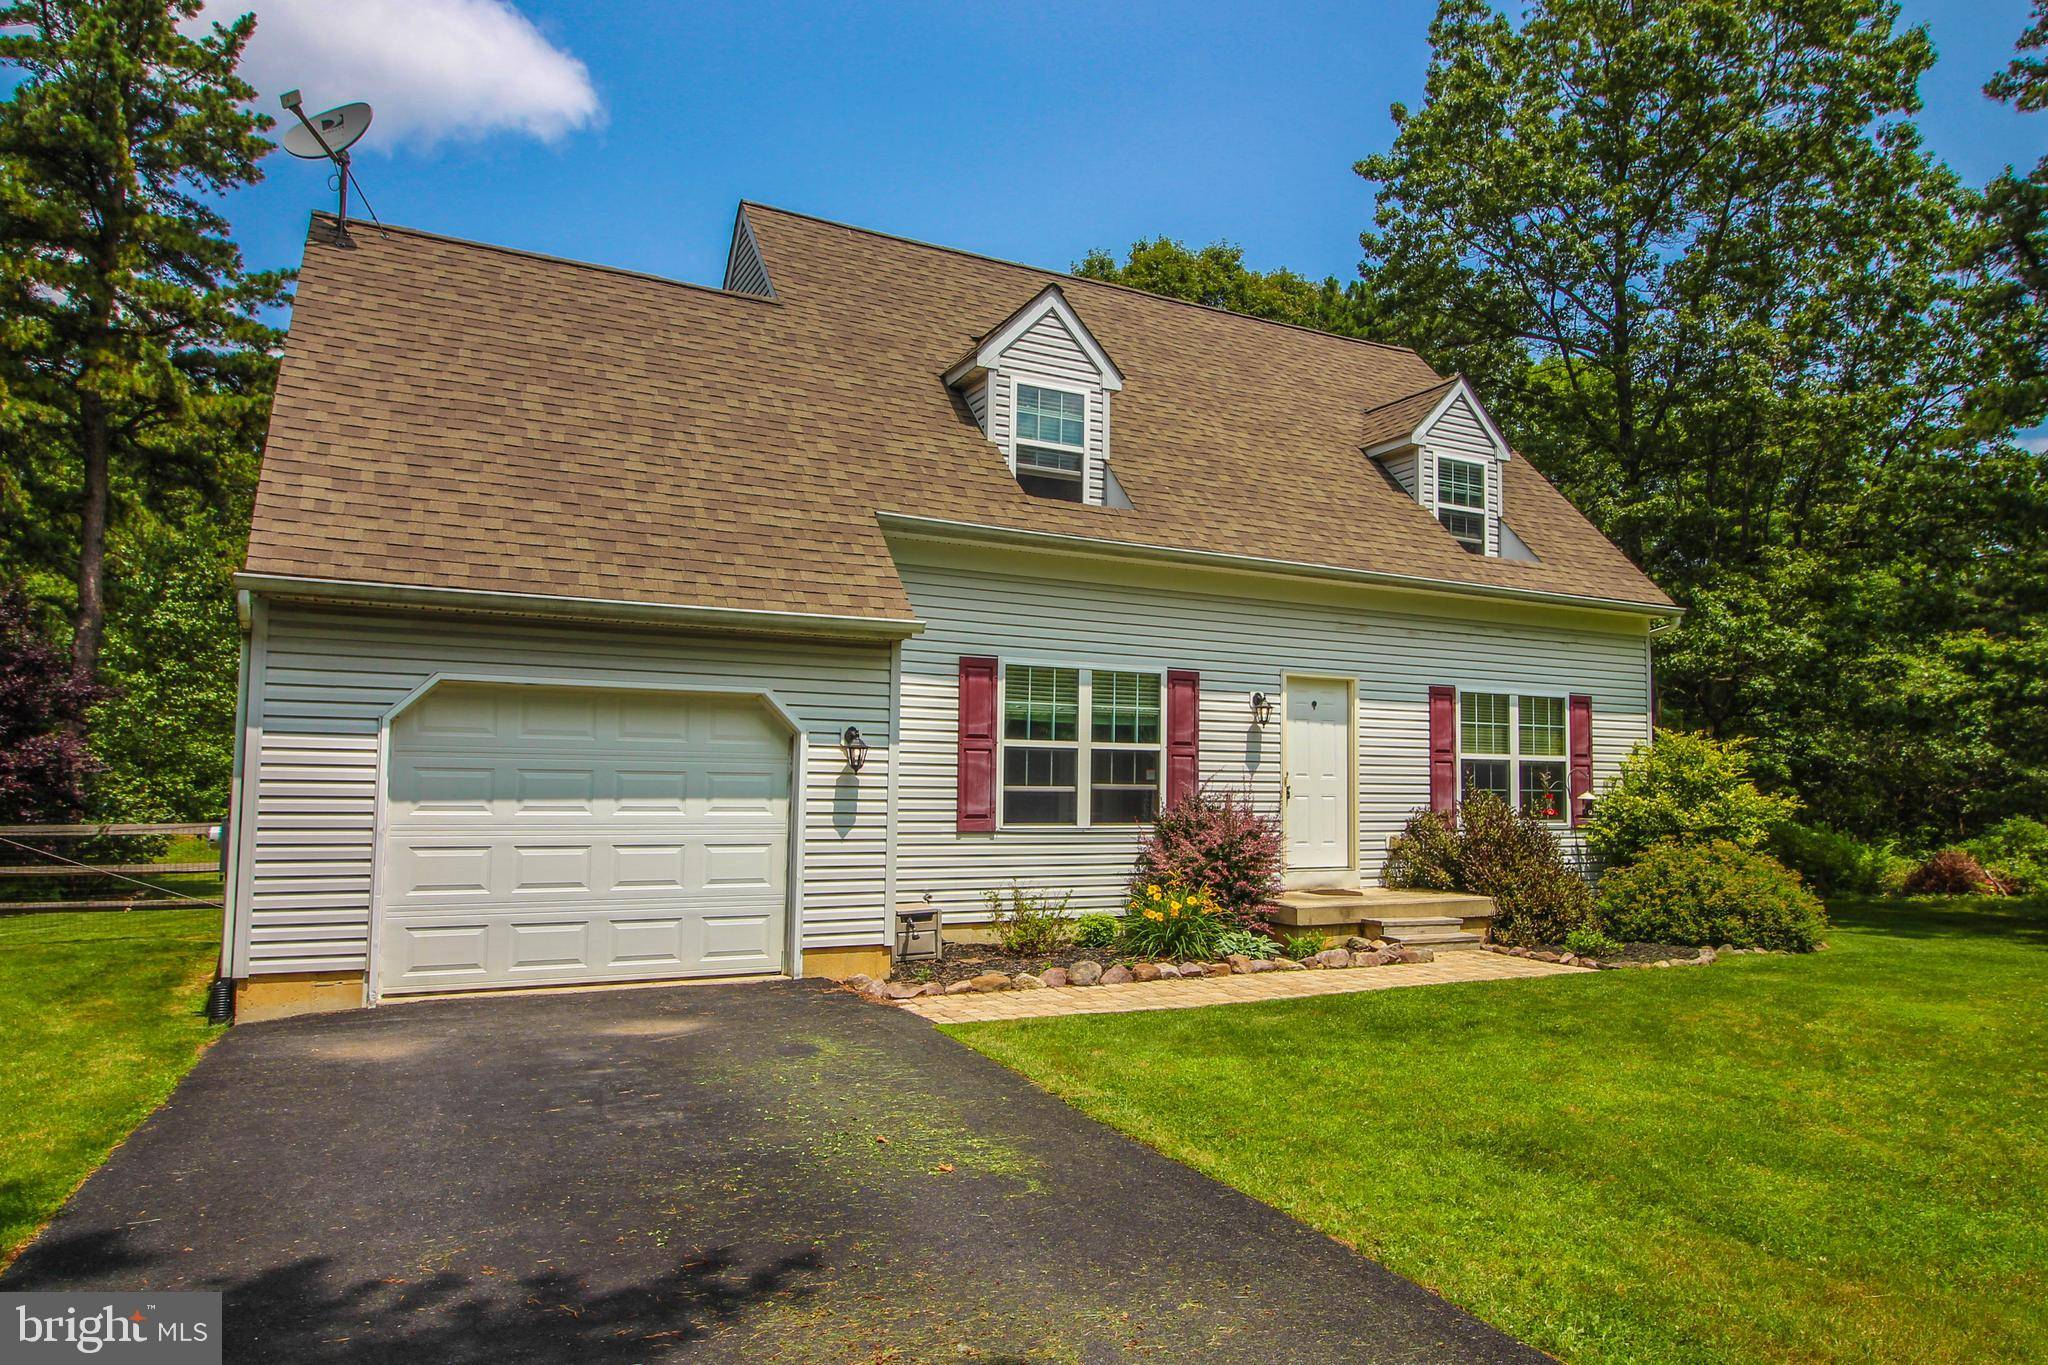 75 ROBERTSON ROAD, JIM THORPE, PA 18229